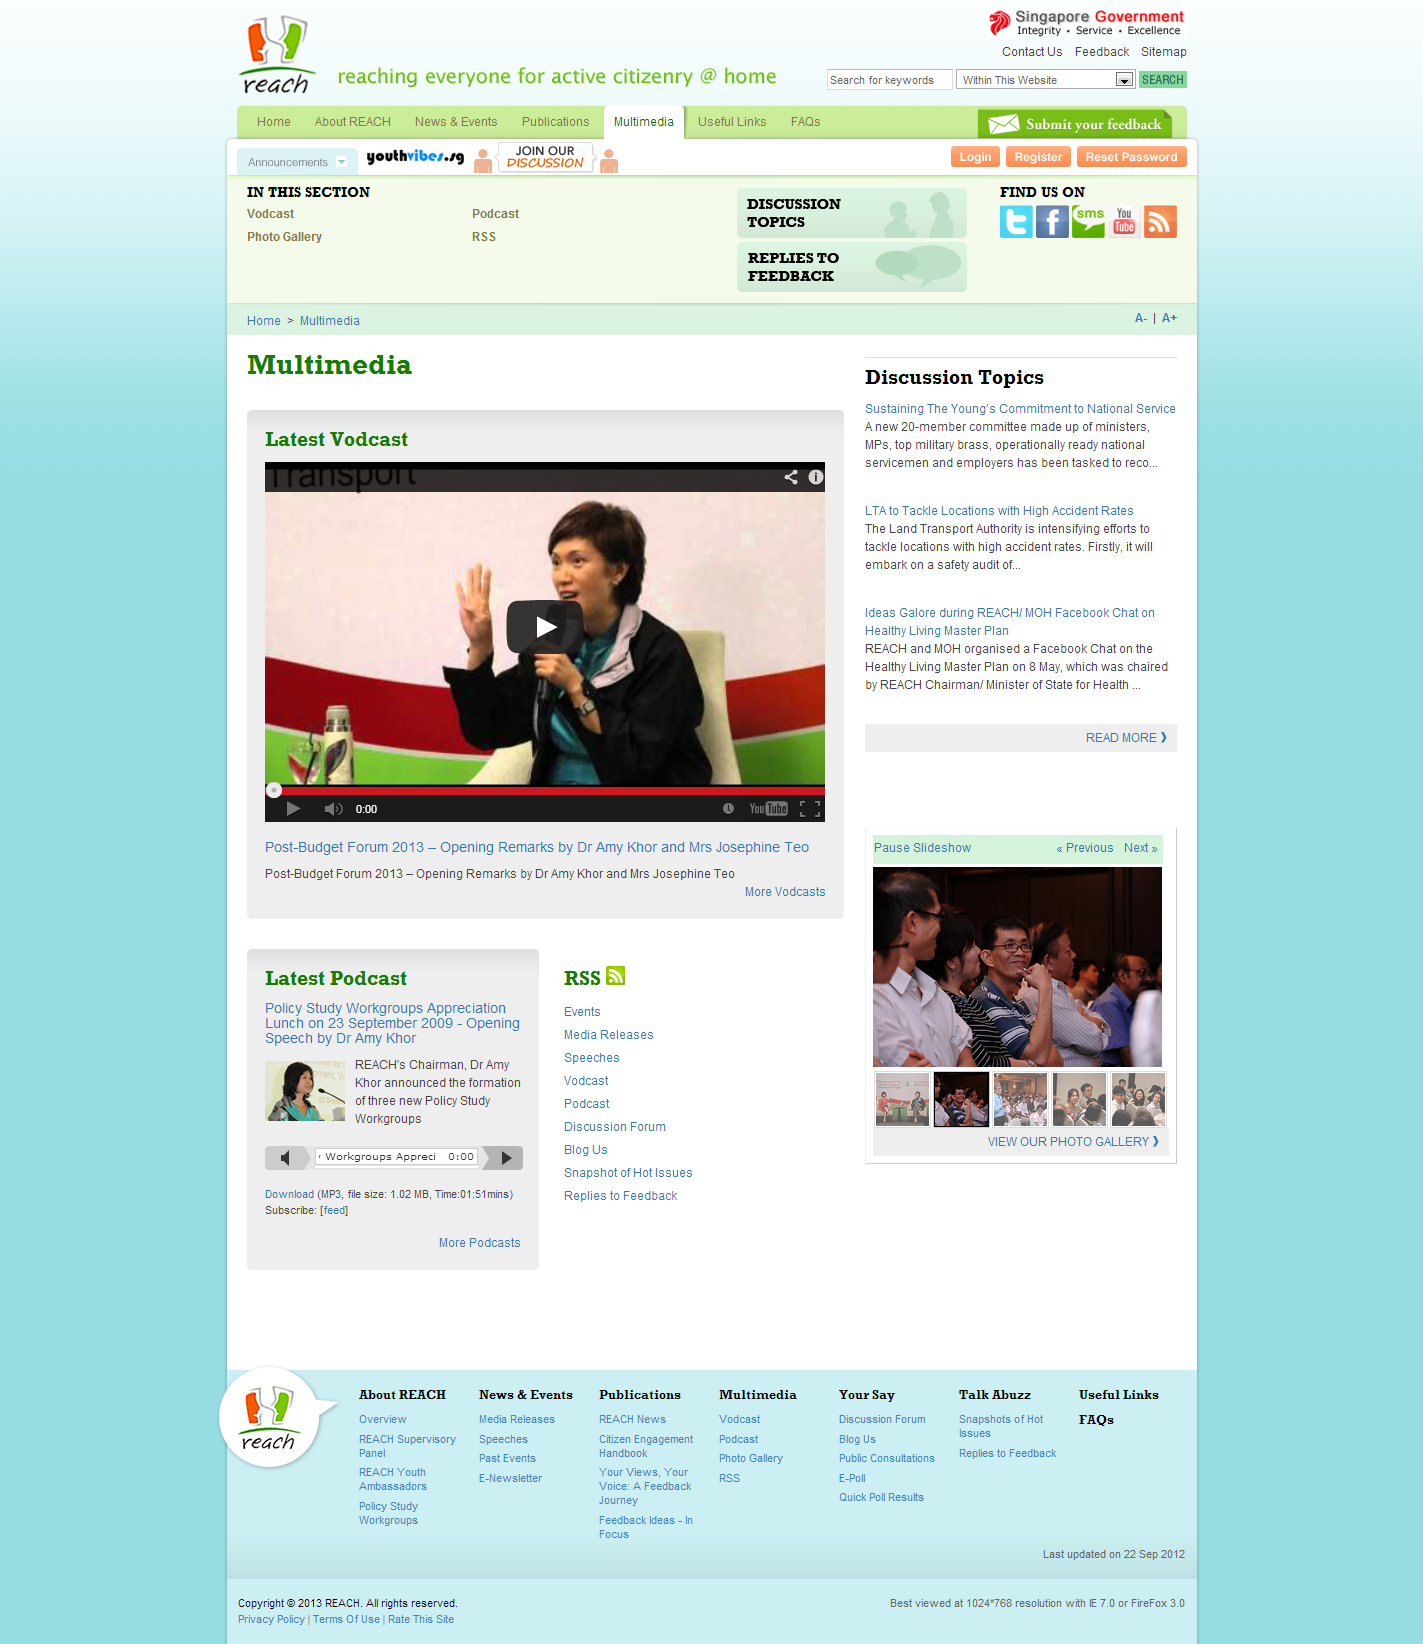 MCI - REACH Internet Outreach Portal Image 2